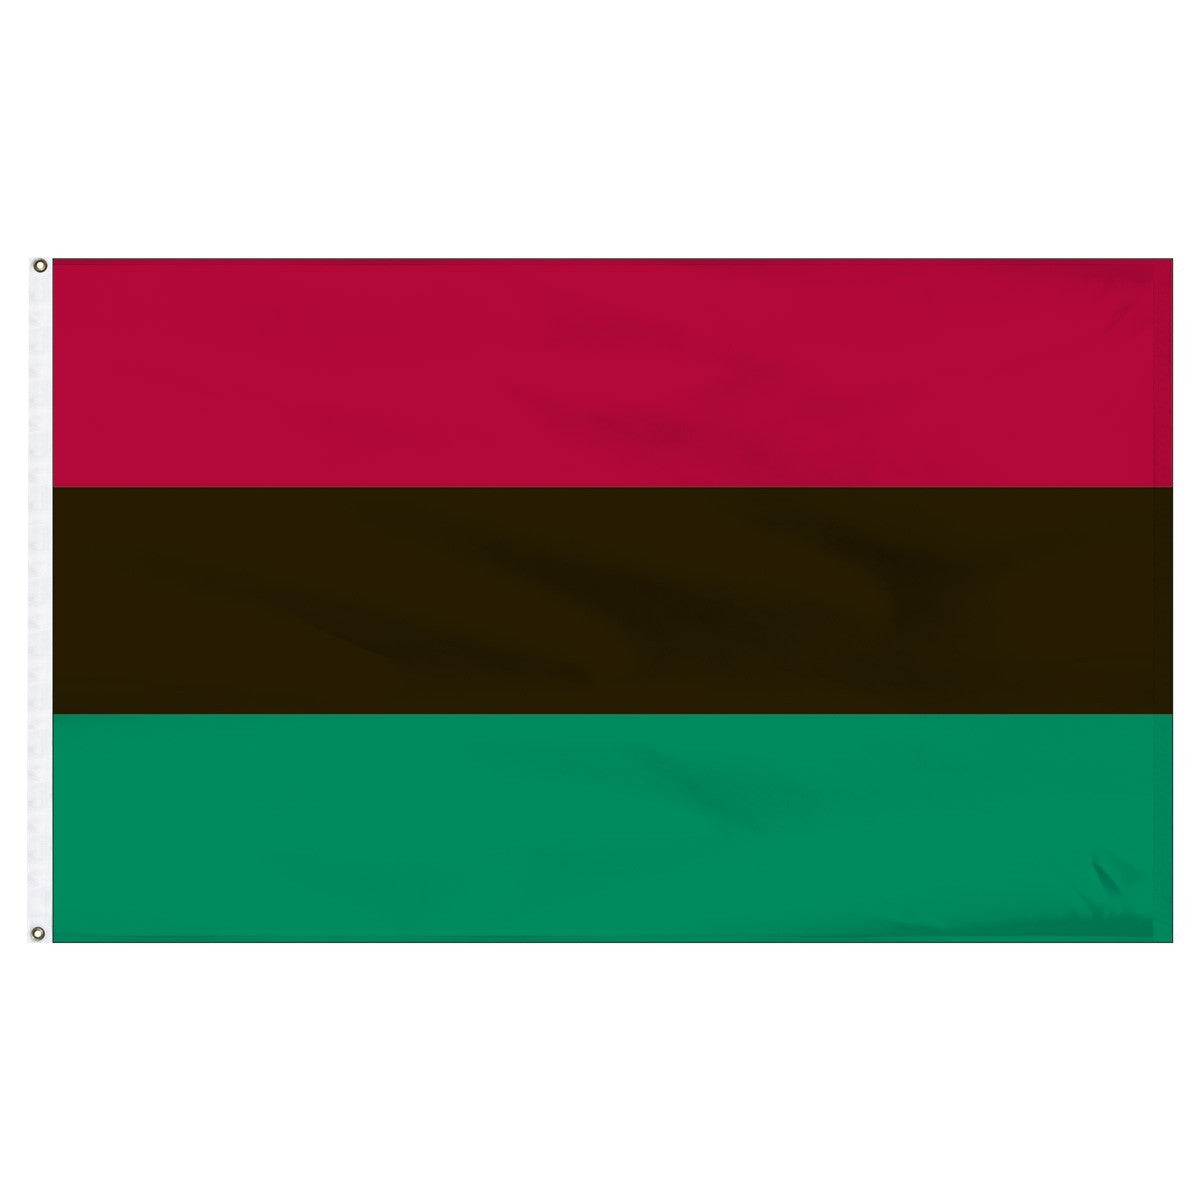 African American 5' x 8' Outdoor Nylon Flag